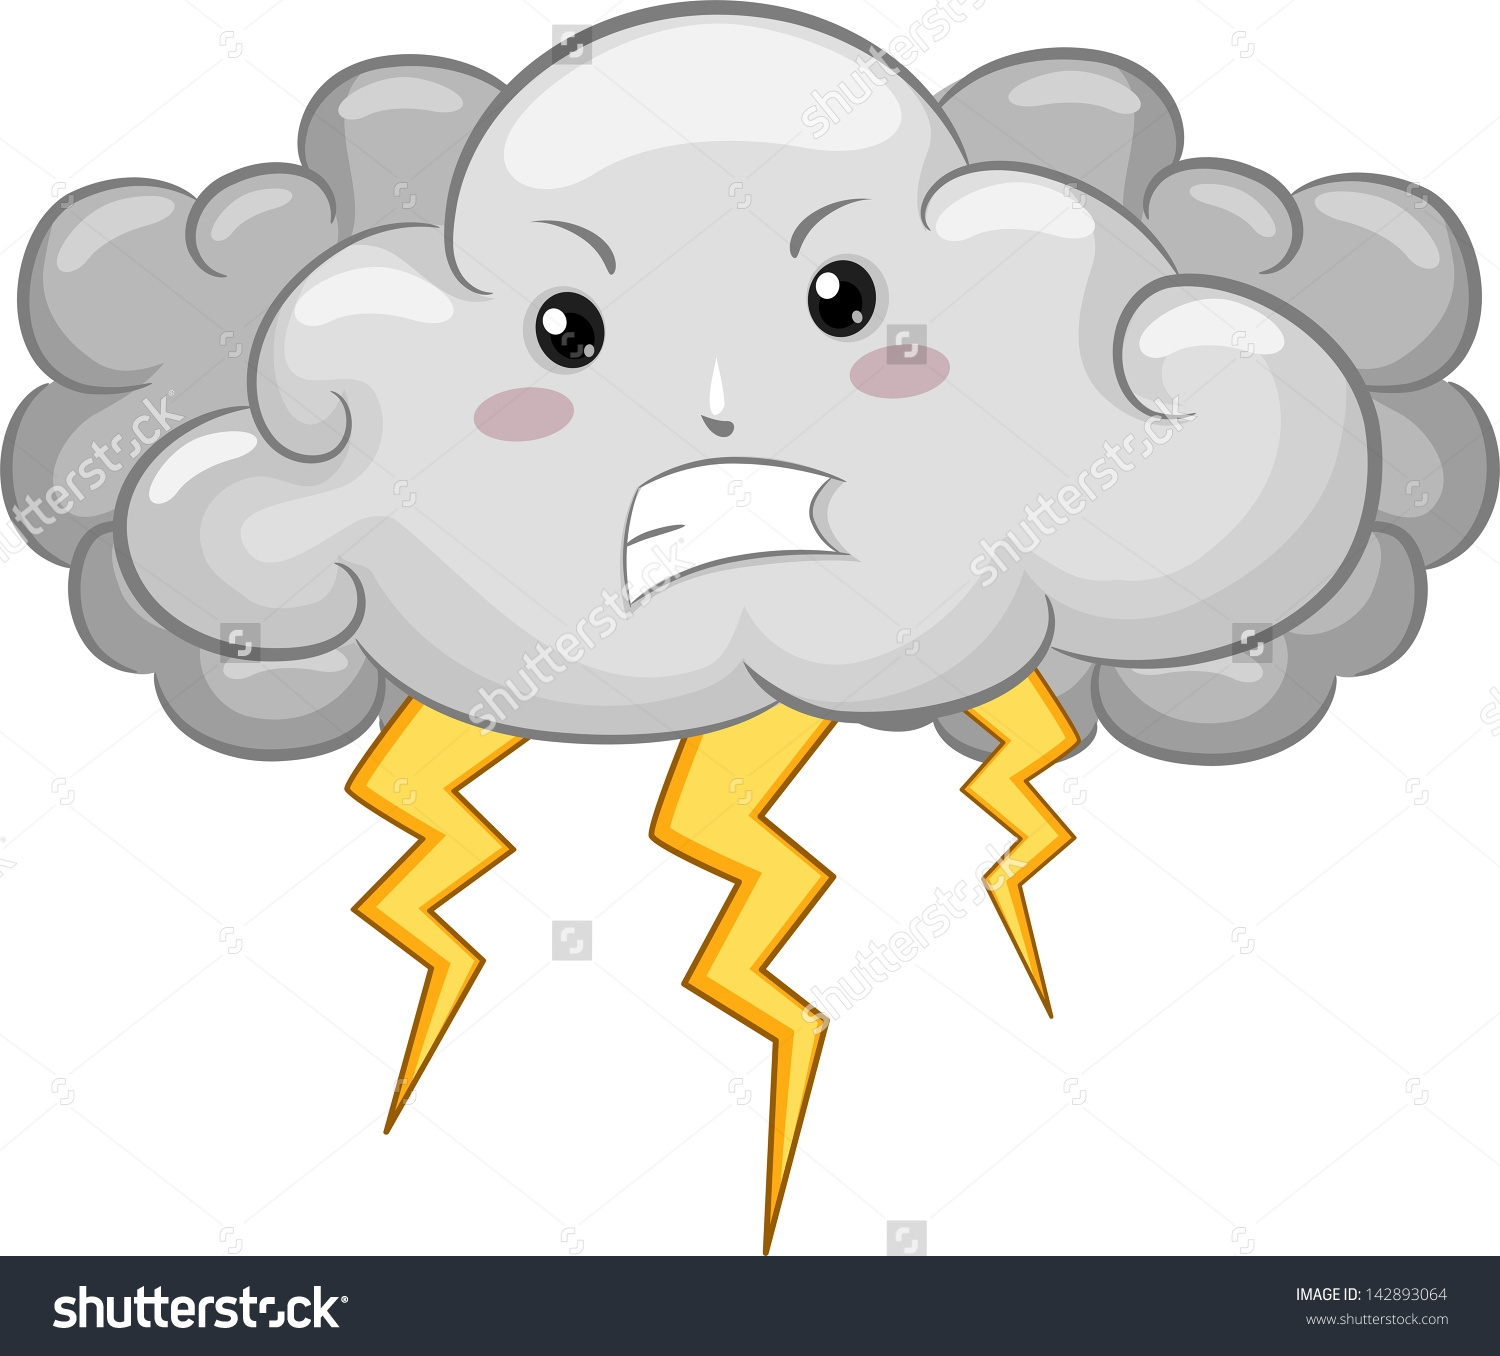 Storm clipart Clouds With A Pictures Clipart